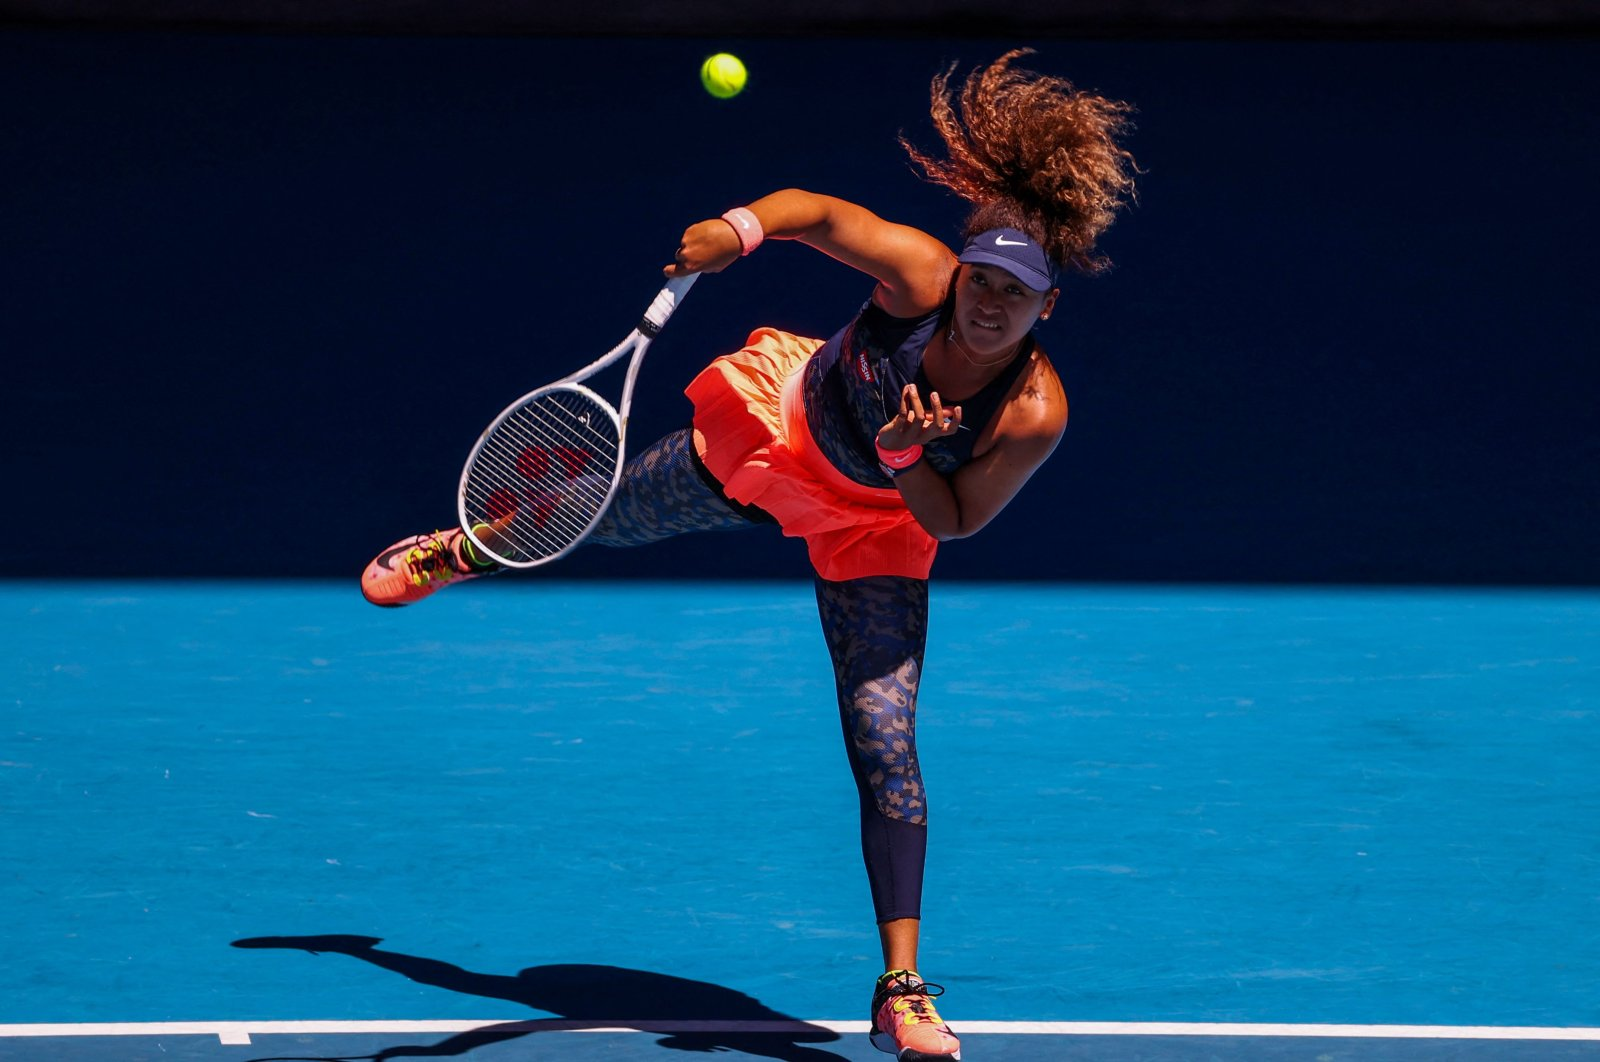 Japan's Naomi Osaka serves against U.S.' Serena Williams during their Australian Open women's singles semifinal in Melbourne, Australia, Feb. 18, 2021. (AFP Photo)